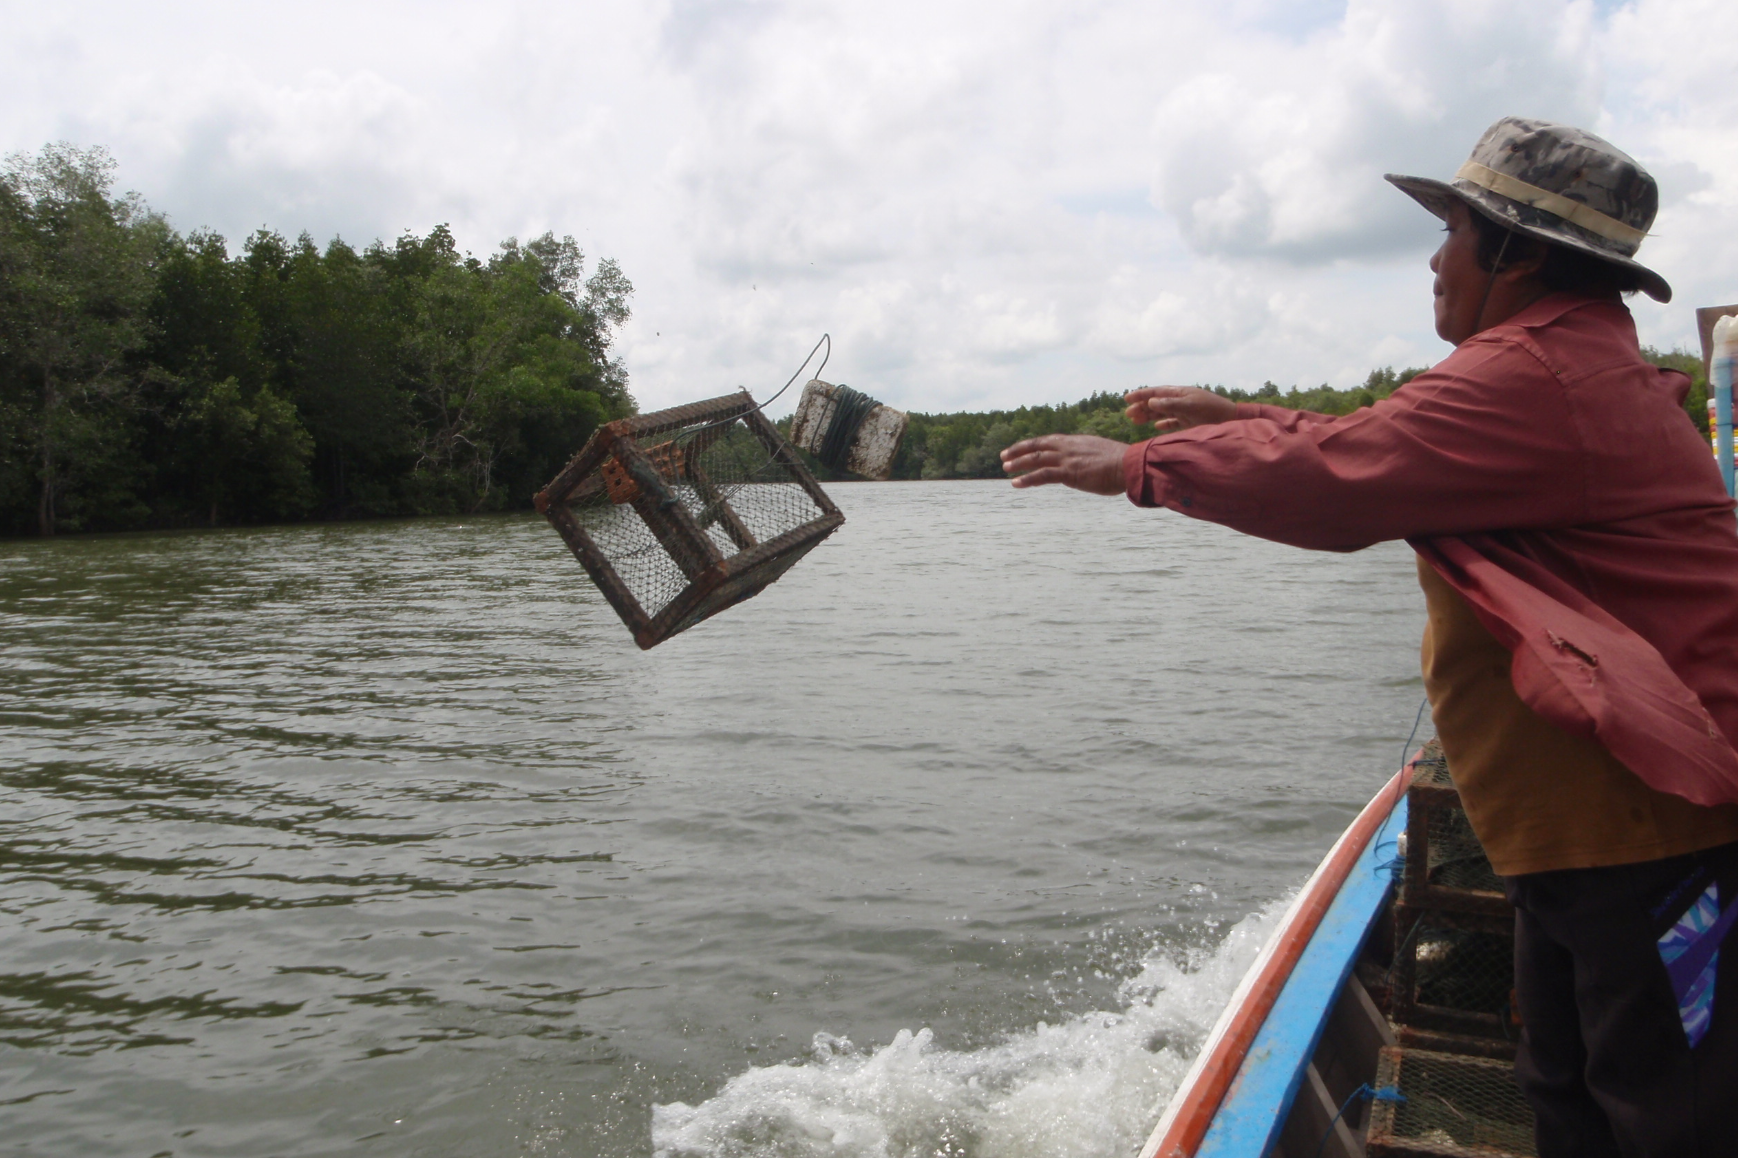 SETTING TRAP, THAILAND CREDIT: Mangrove Action Project / coral reef image bank